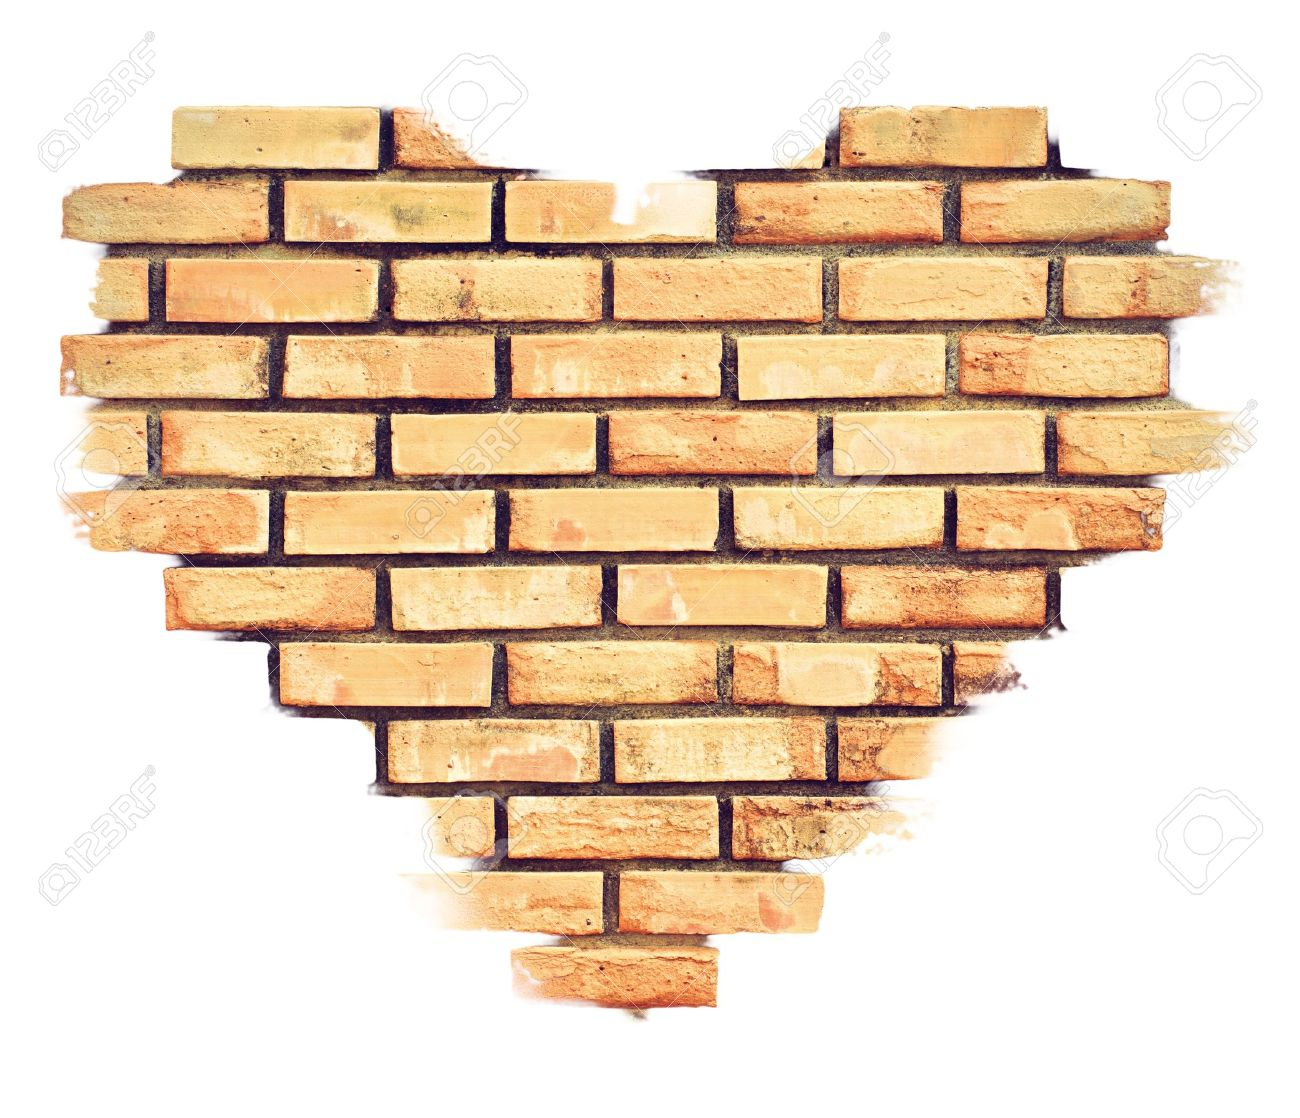 Heart Brick Stock Photo, Picture And Royalty Free Image. Image 8695740.